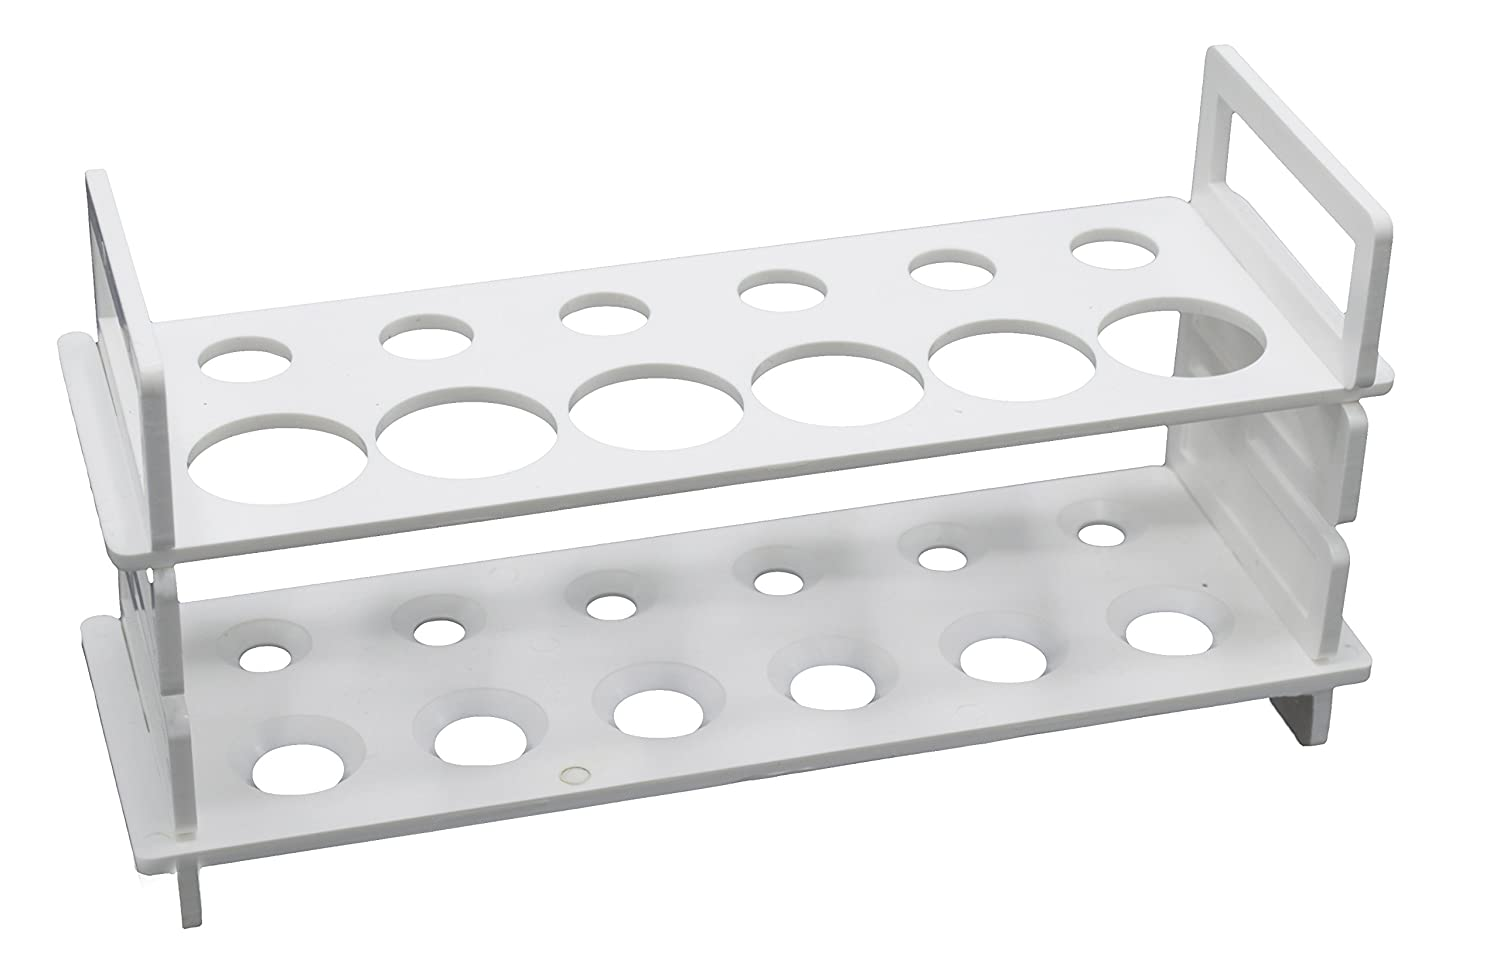 12 Hole Test Tube Stand Max 81% OFF - Holds 6 New life Diameter 30 mm and 15